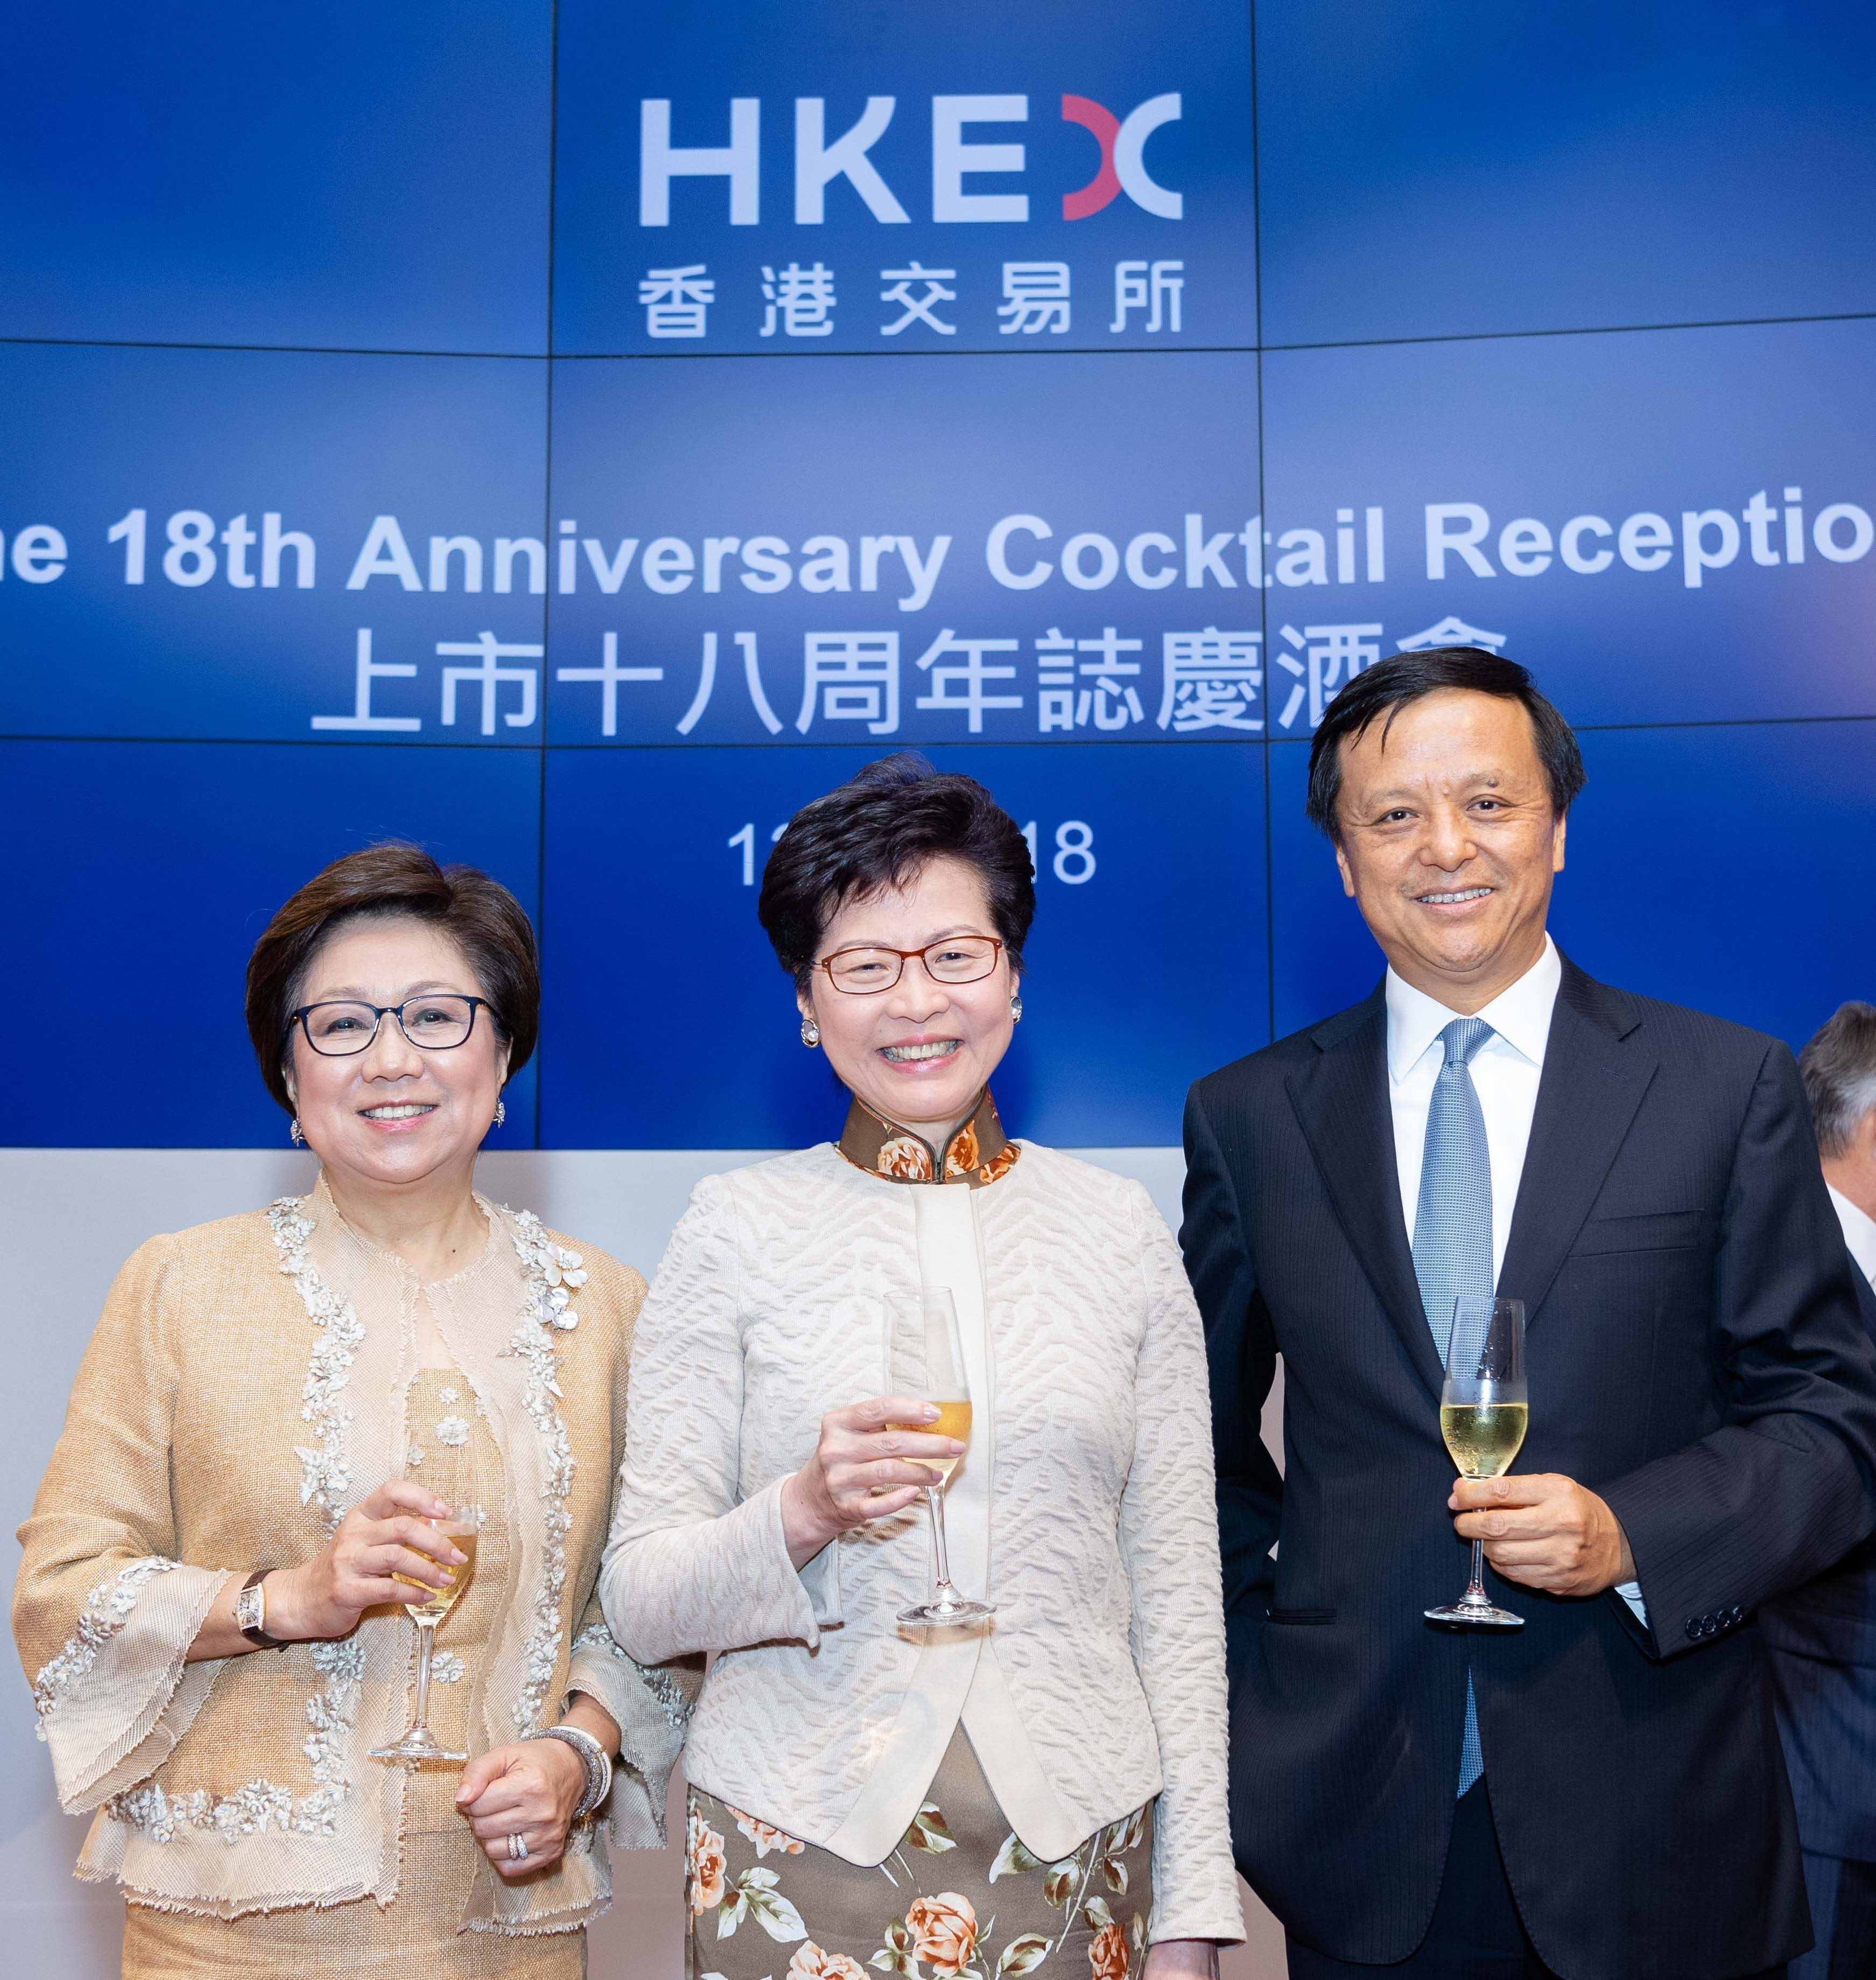 HKEX Chairman Laura Cha and Chief Executive Charles Li greeted guests and thanked them for their support over the years.